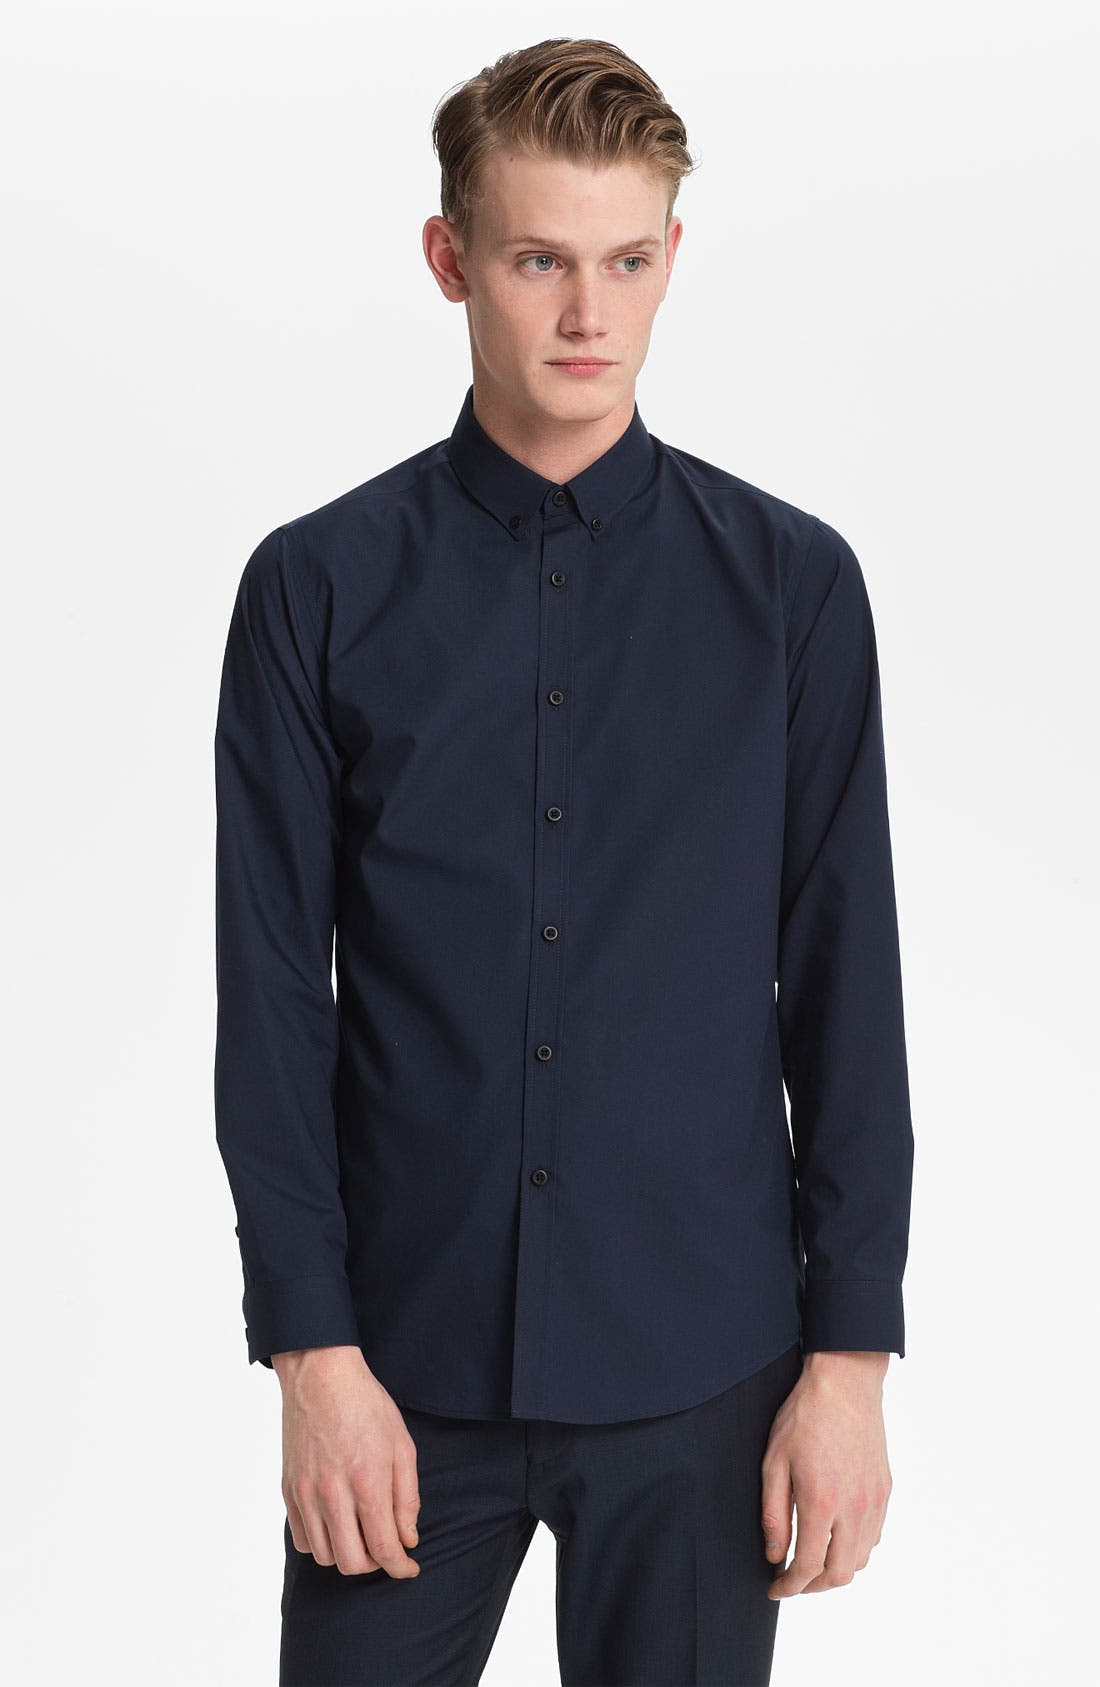 Alternate Image 1 Selected - Topman Slim Fit Dress Shirt